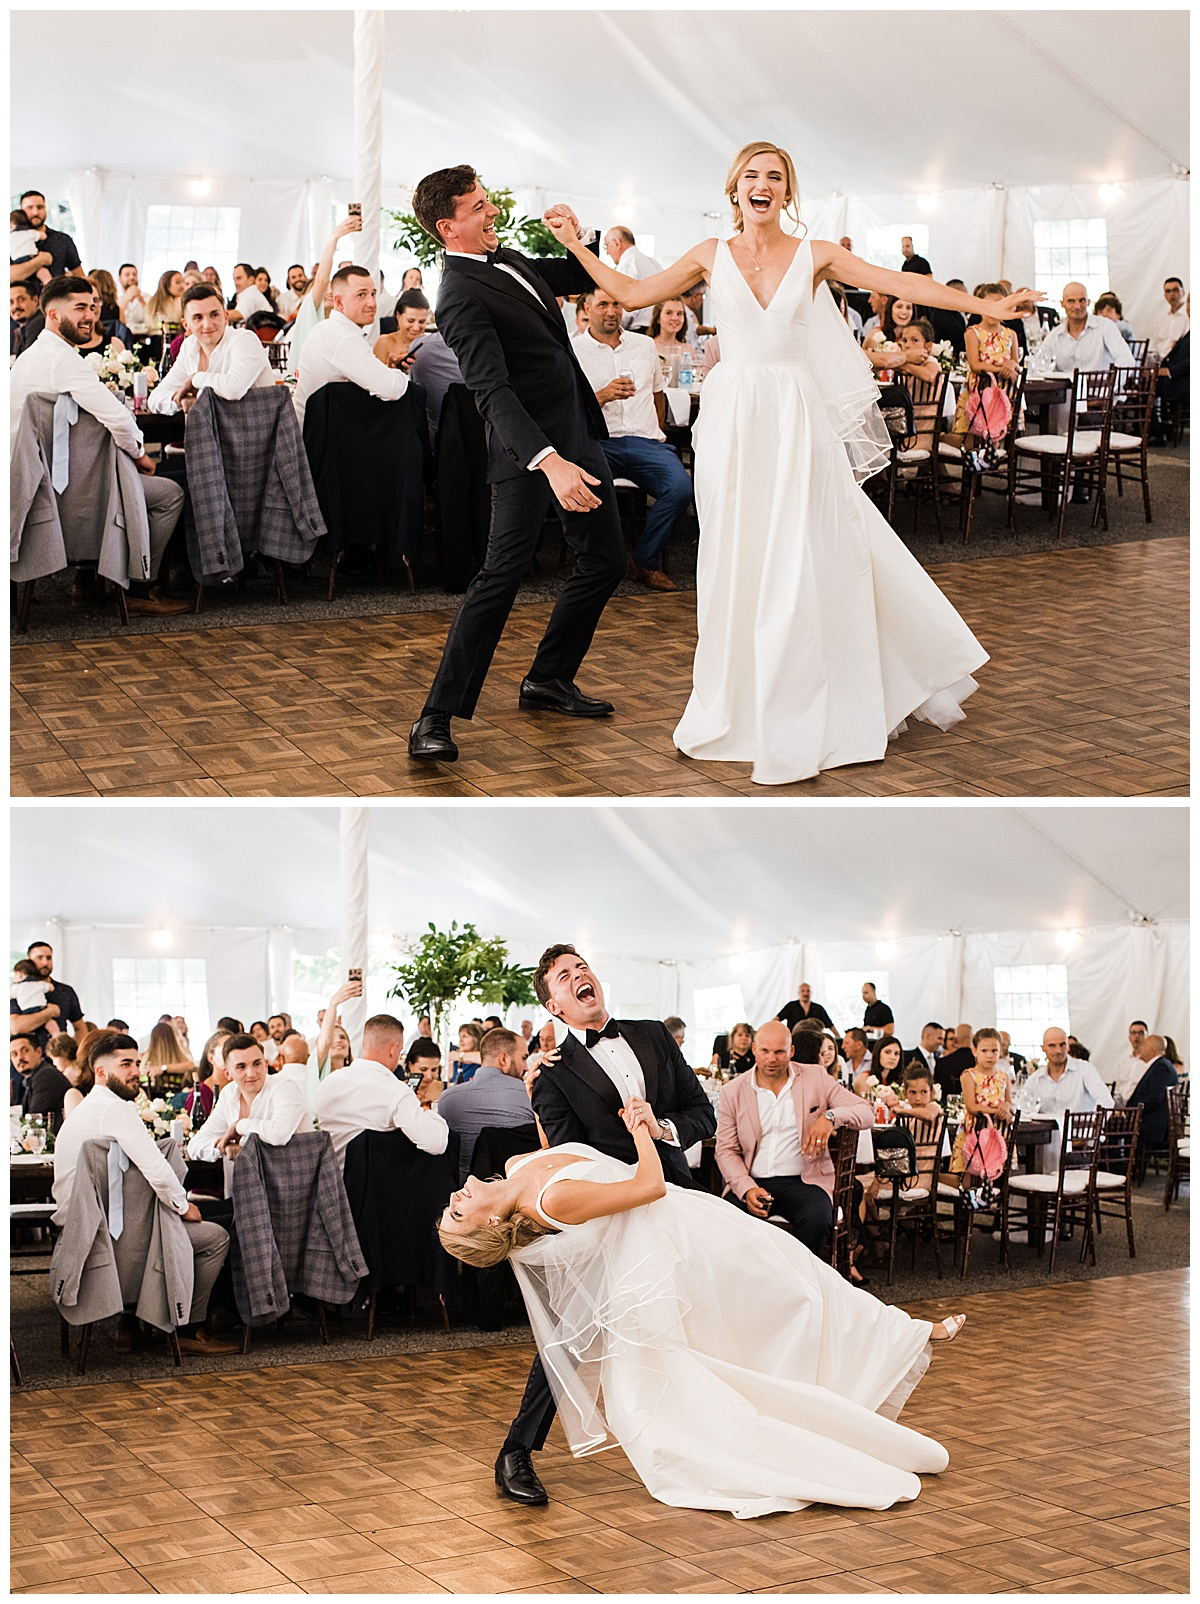 Bride and groom show out on the dance floor| Ontario wedding| Toronto wedding photographer| 3photography